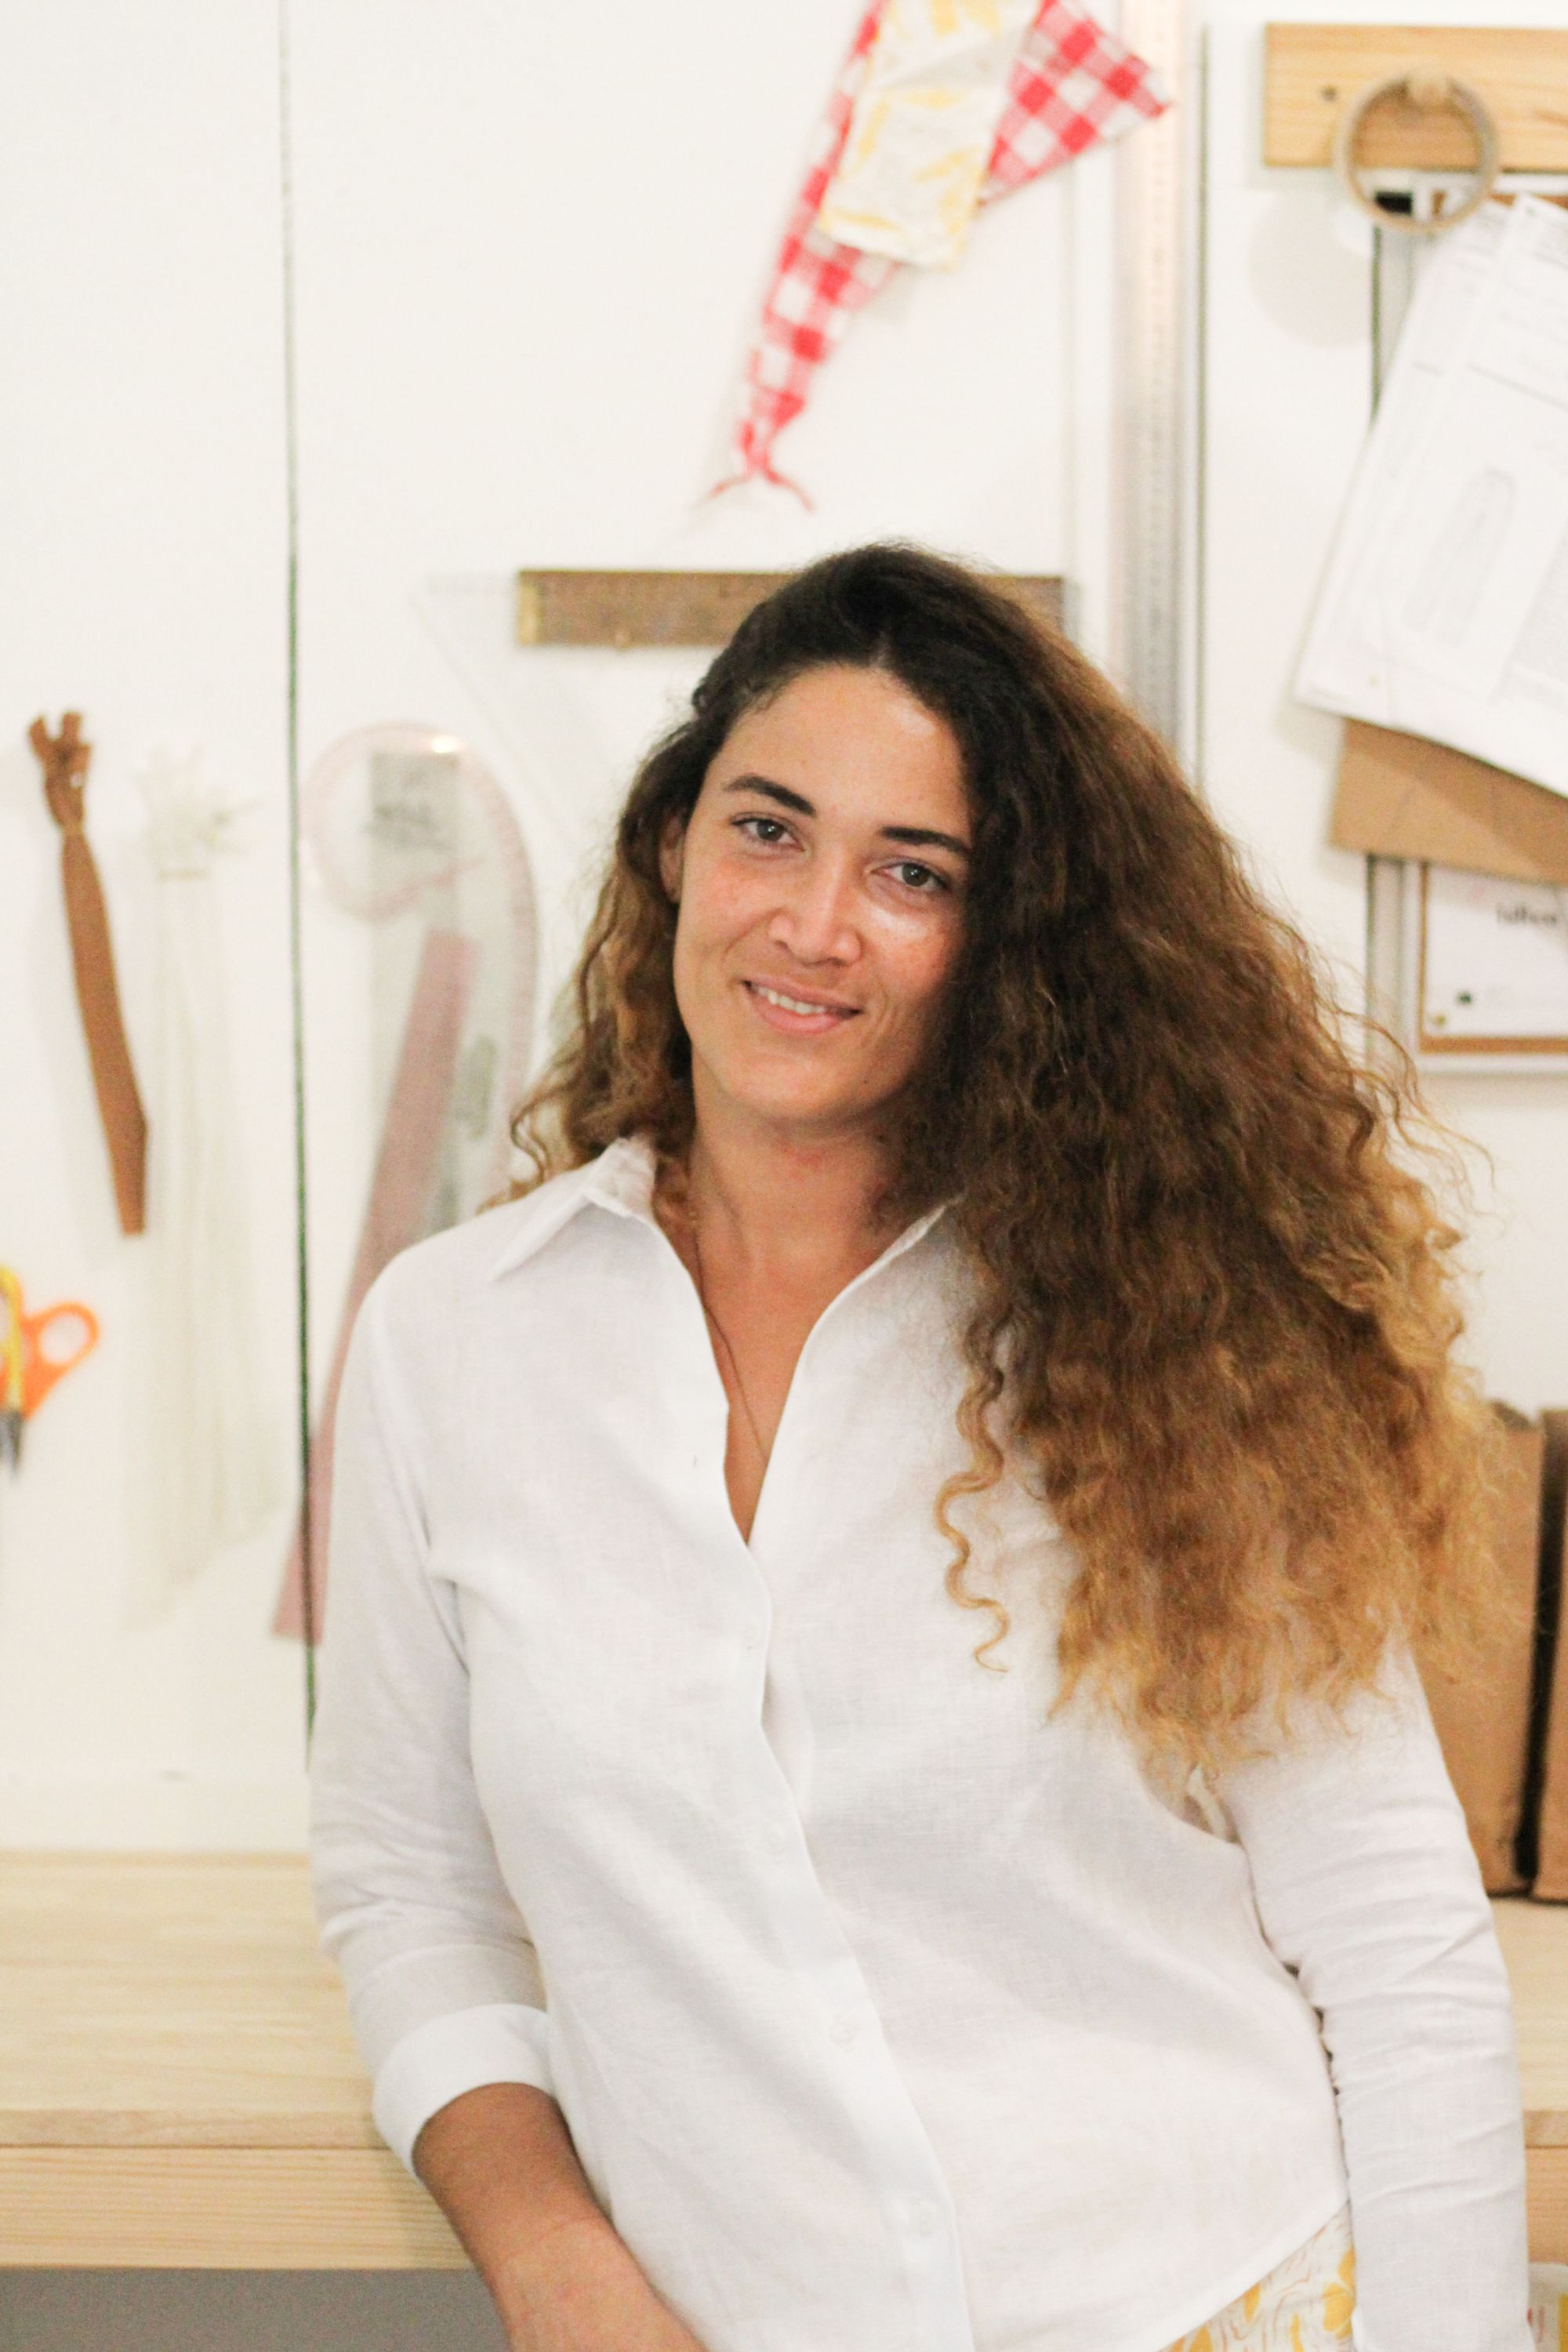 How a transient lifestyle and a career in costume design inspired Osha Shealey to start slow fashion label Bilboa.